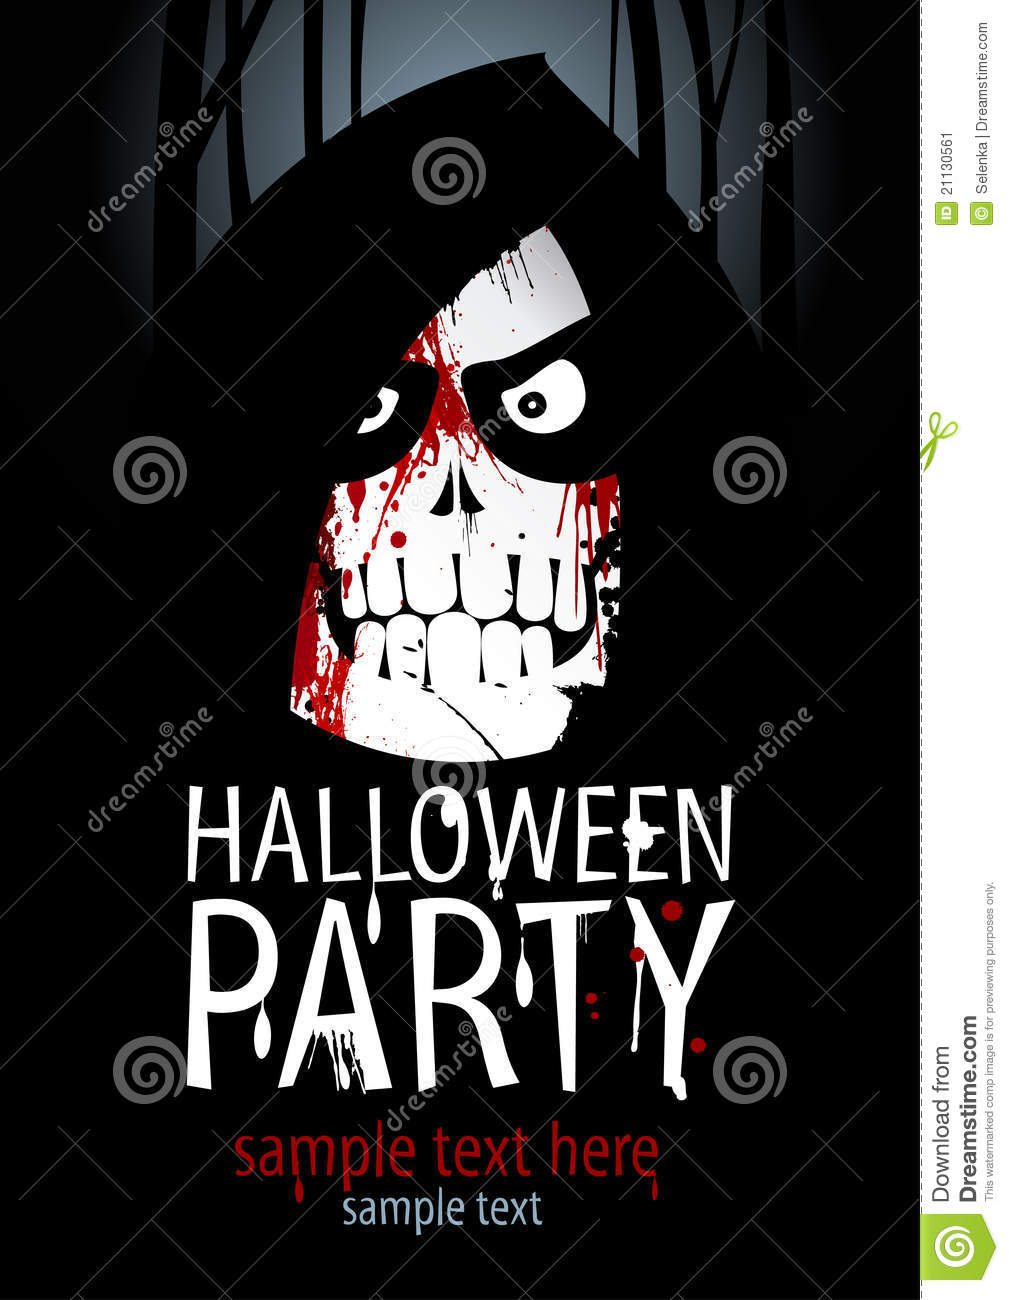 Halloween party template.